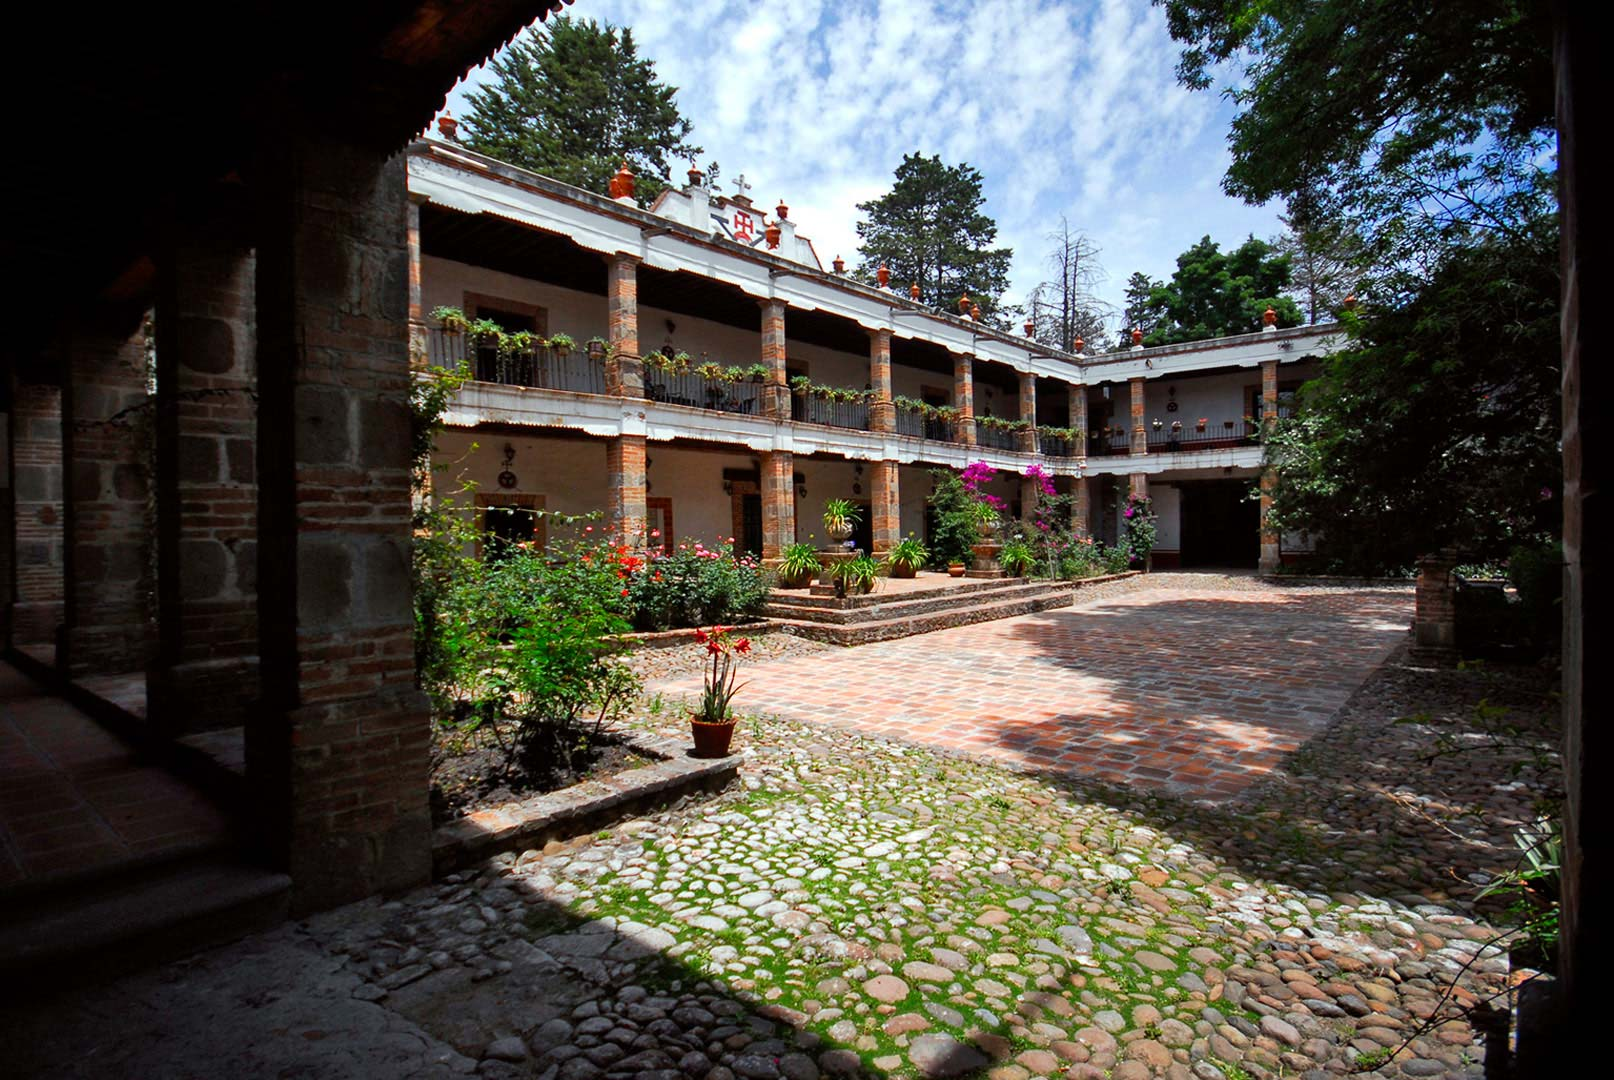 Hacienda Buenavista Boutique Hotel Spa